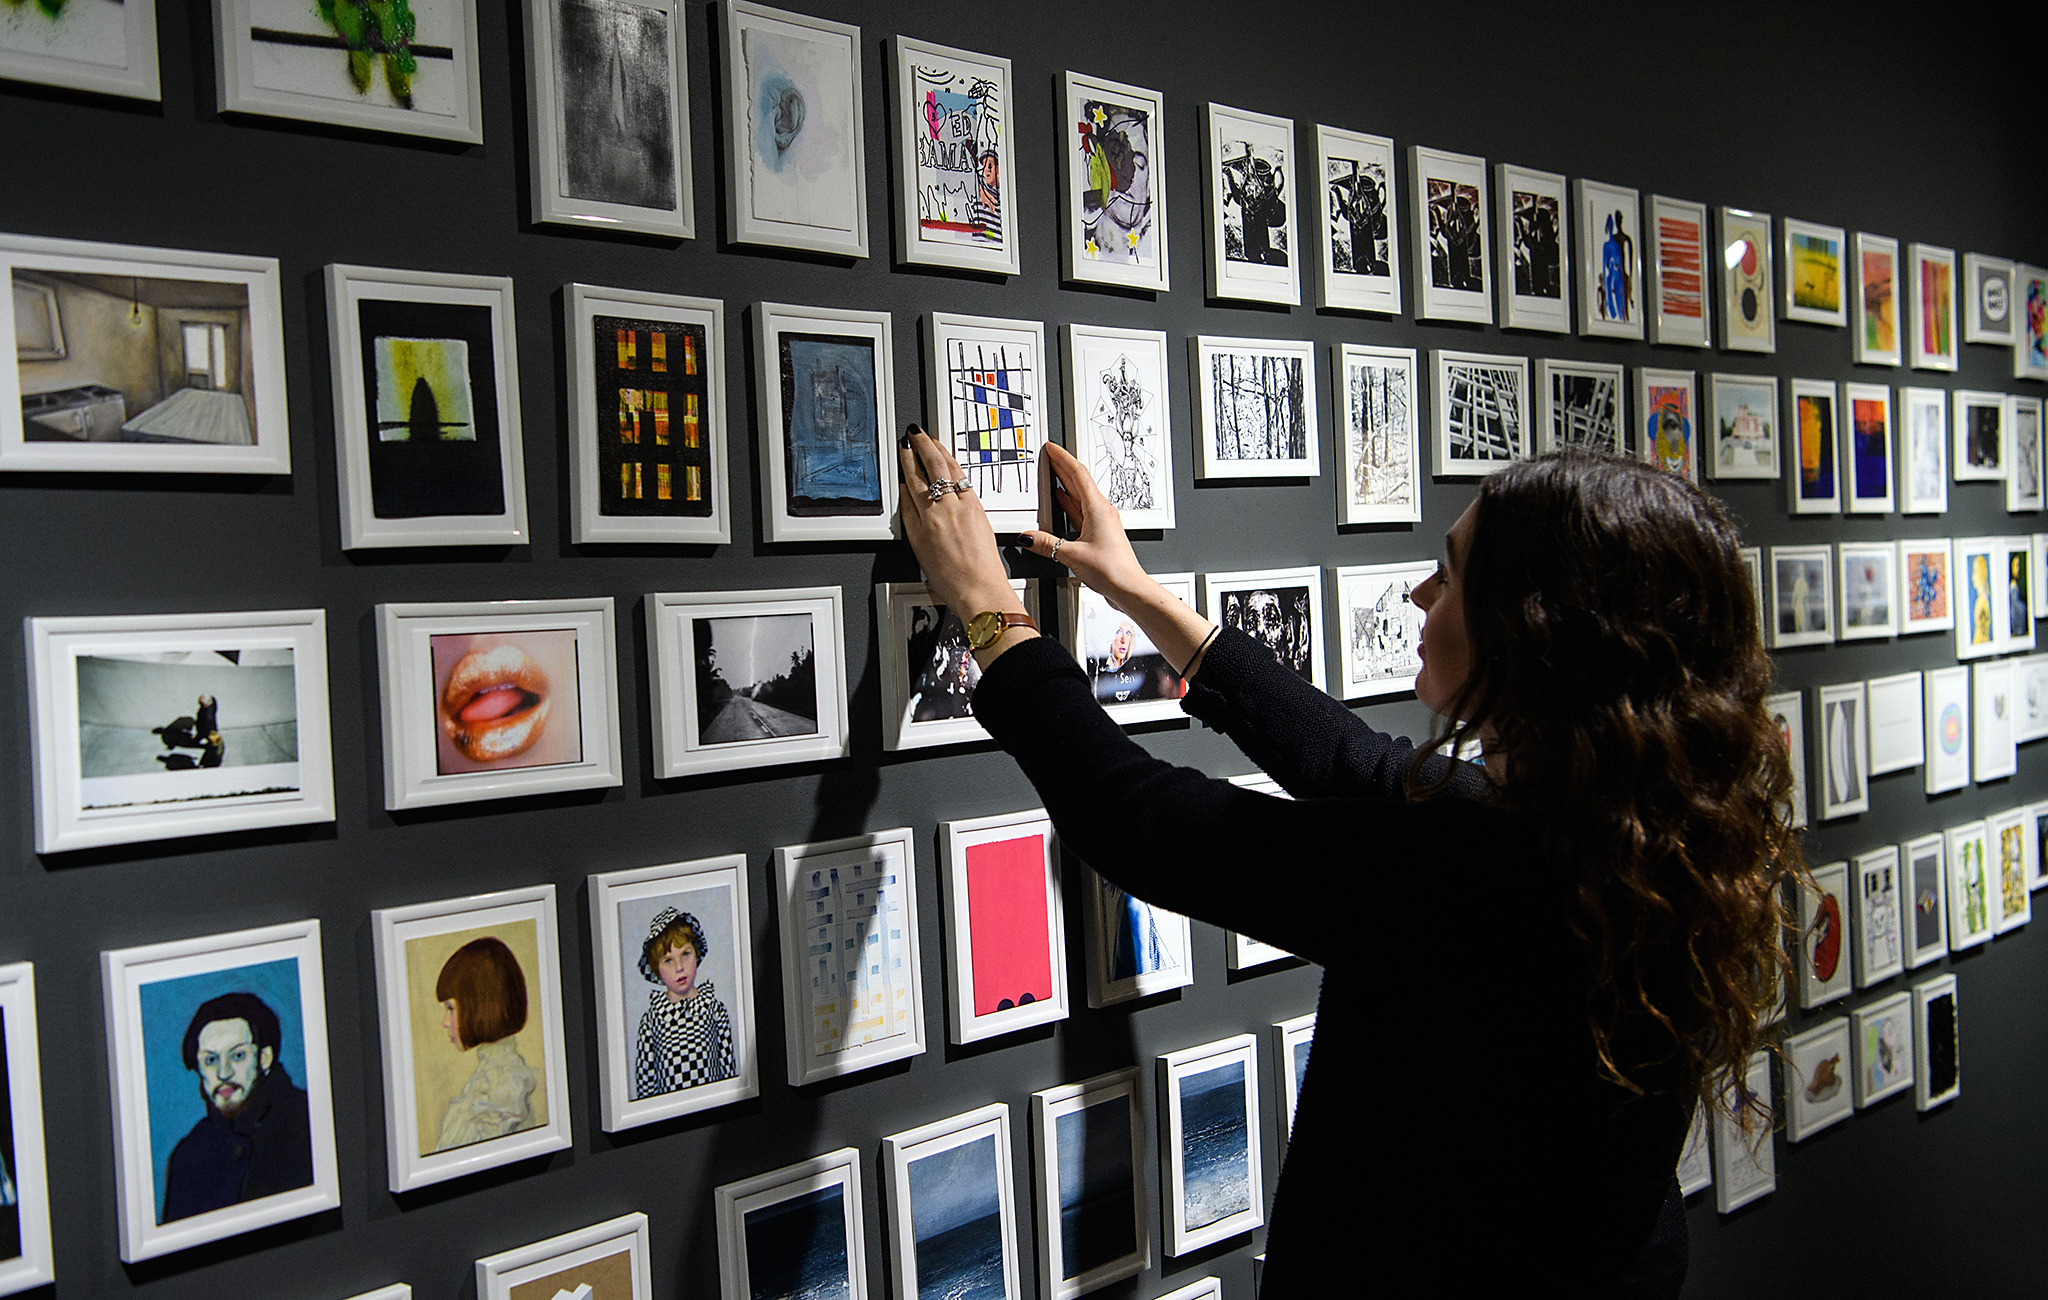 A member of staff poses next to some of the 400 postcards by various artists including Damien Hirst and Grayson Perry on display ahead of a secret auction, at the Maddox Gallery on November 15, 2016 in London, England. The auction takes place at the Bloomsbury Auction House on November 17 and is raising funds for the Hepatitis C Trust.  (Photo by Carl Court/Getty Images)